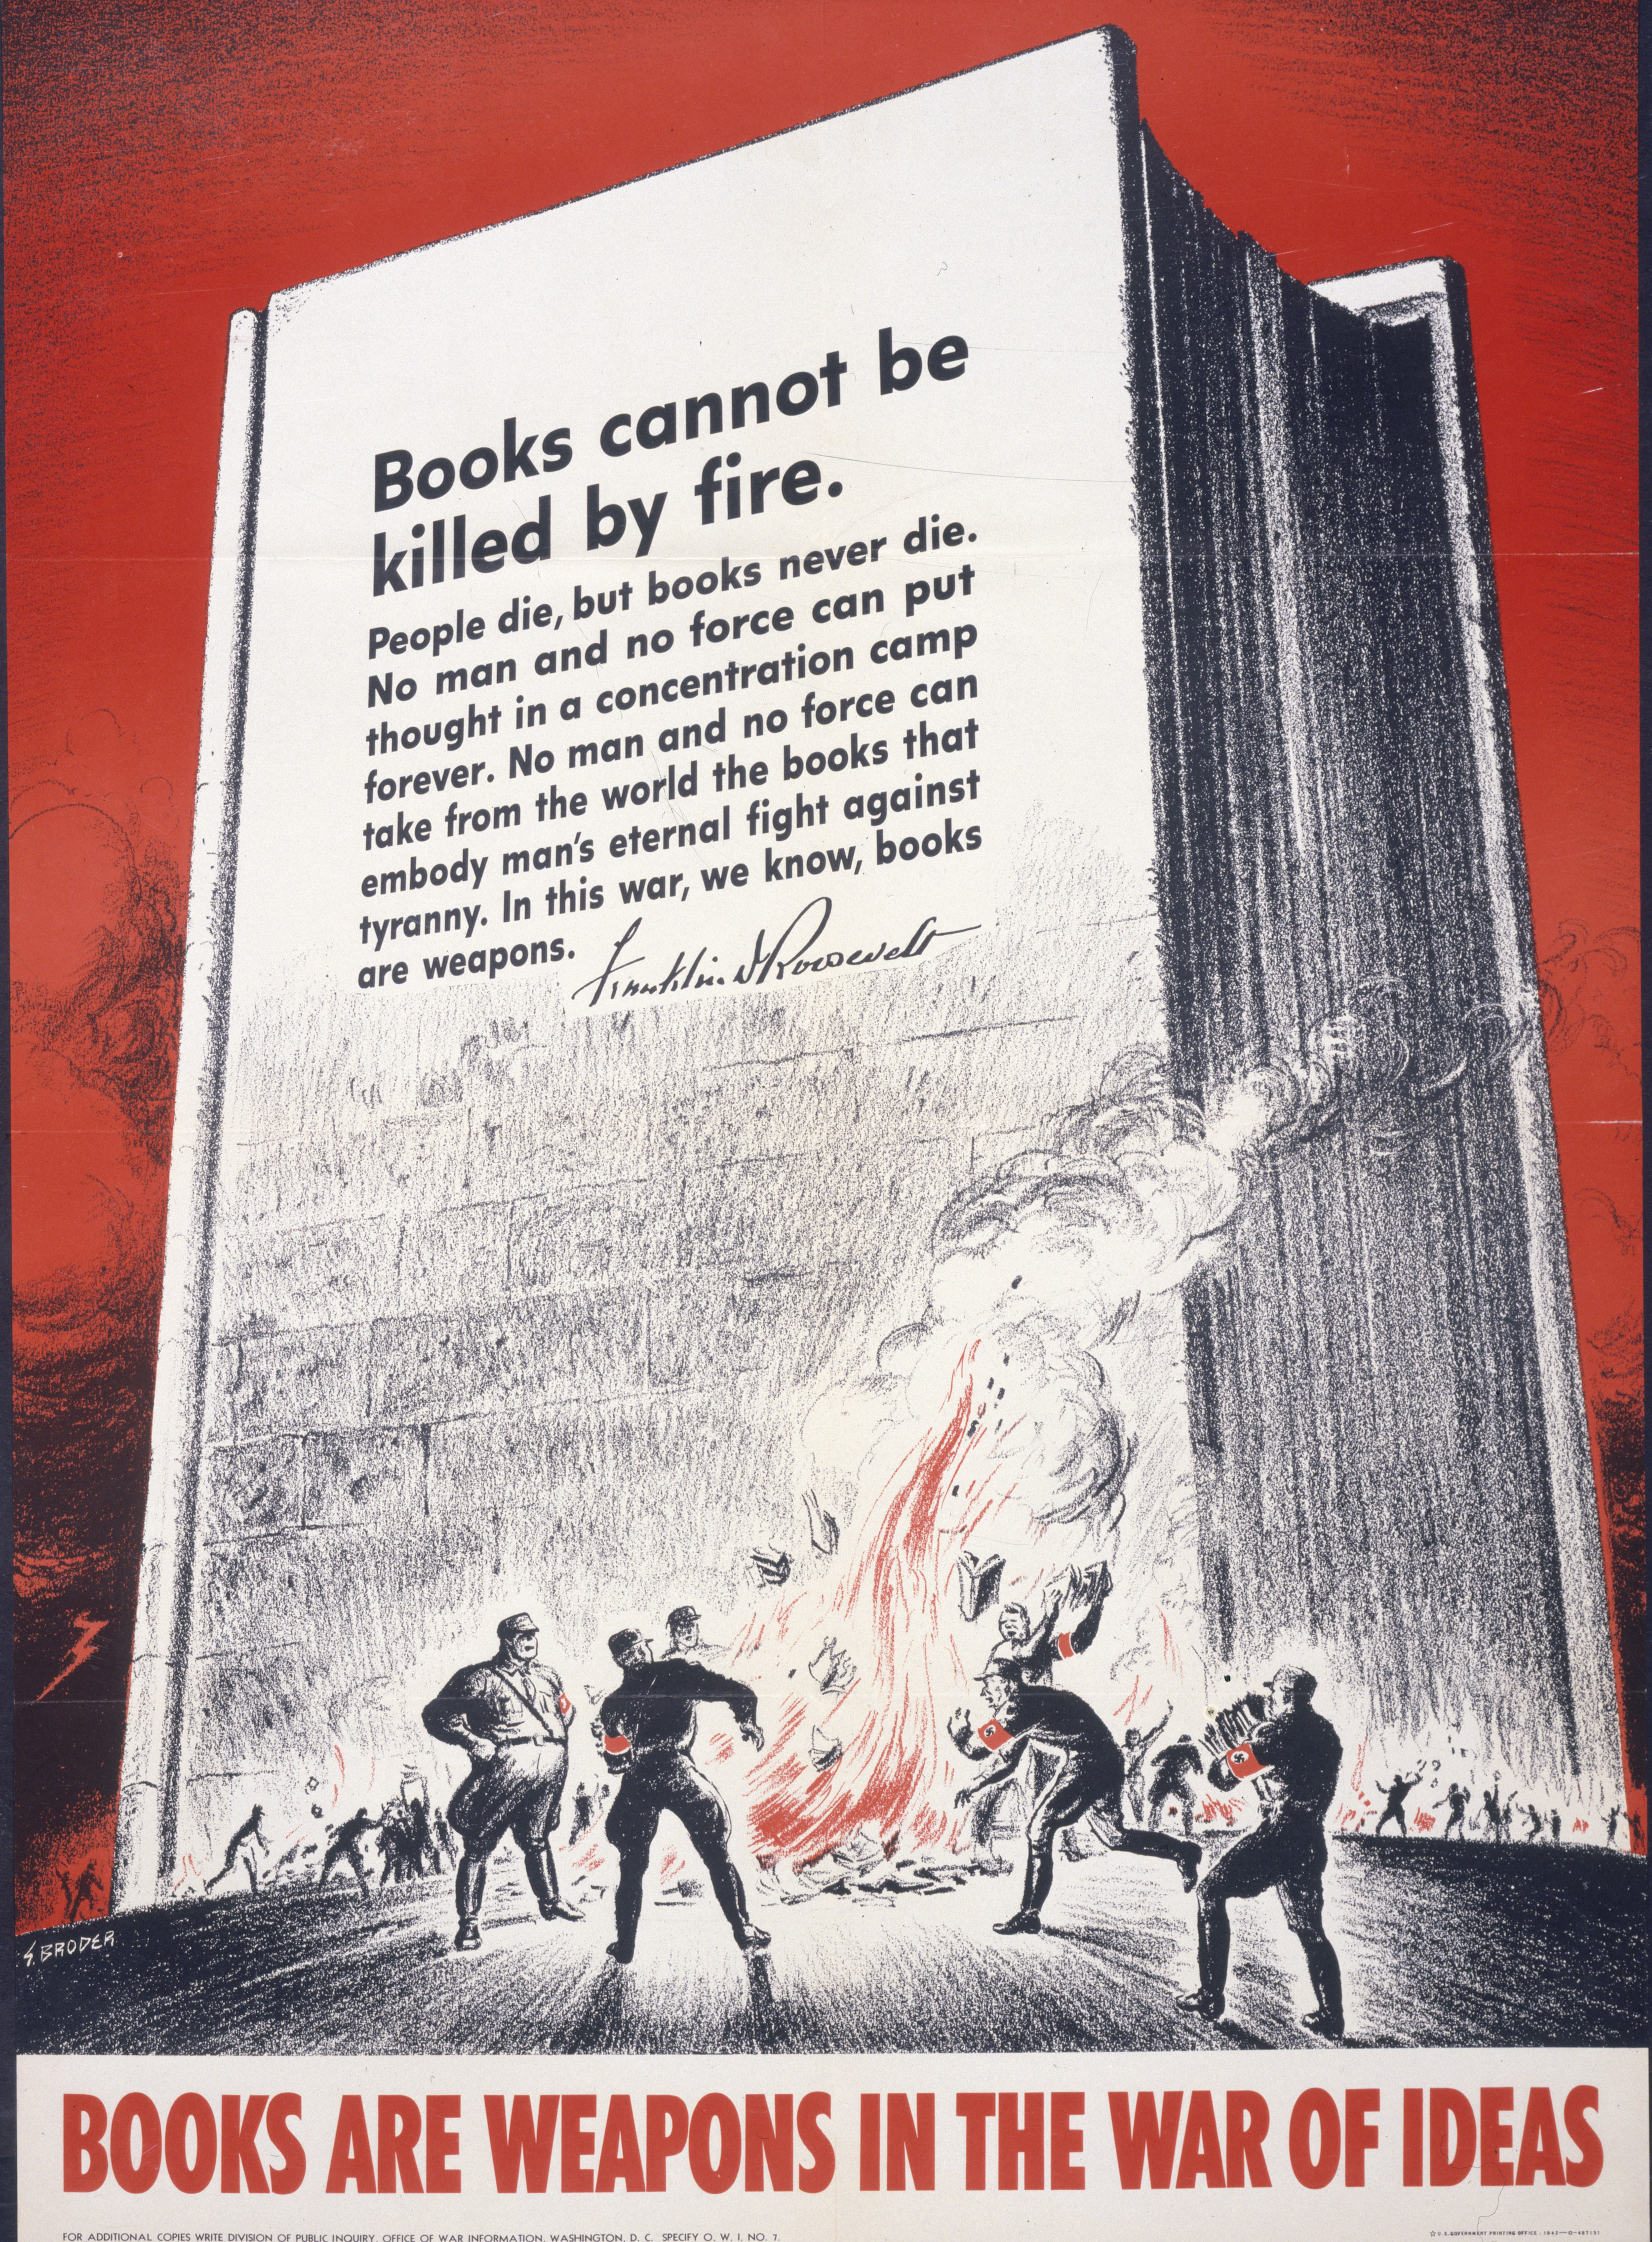 Books are Weapons in the War of Ideas - National Archives and Records Administration - World War II Posters, 1942 - 1945